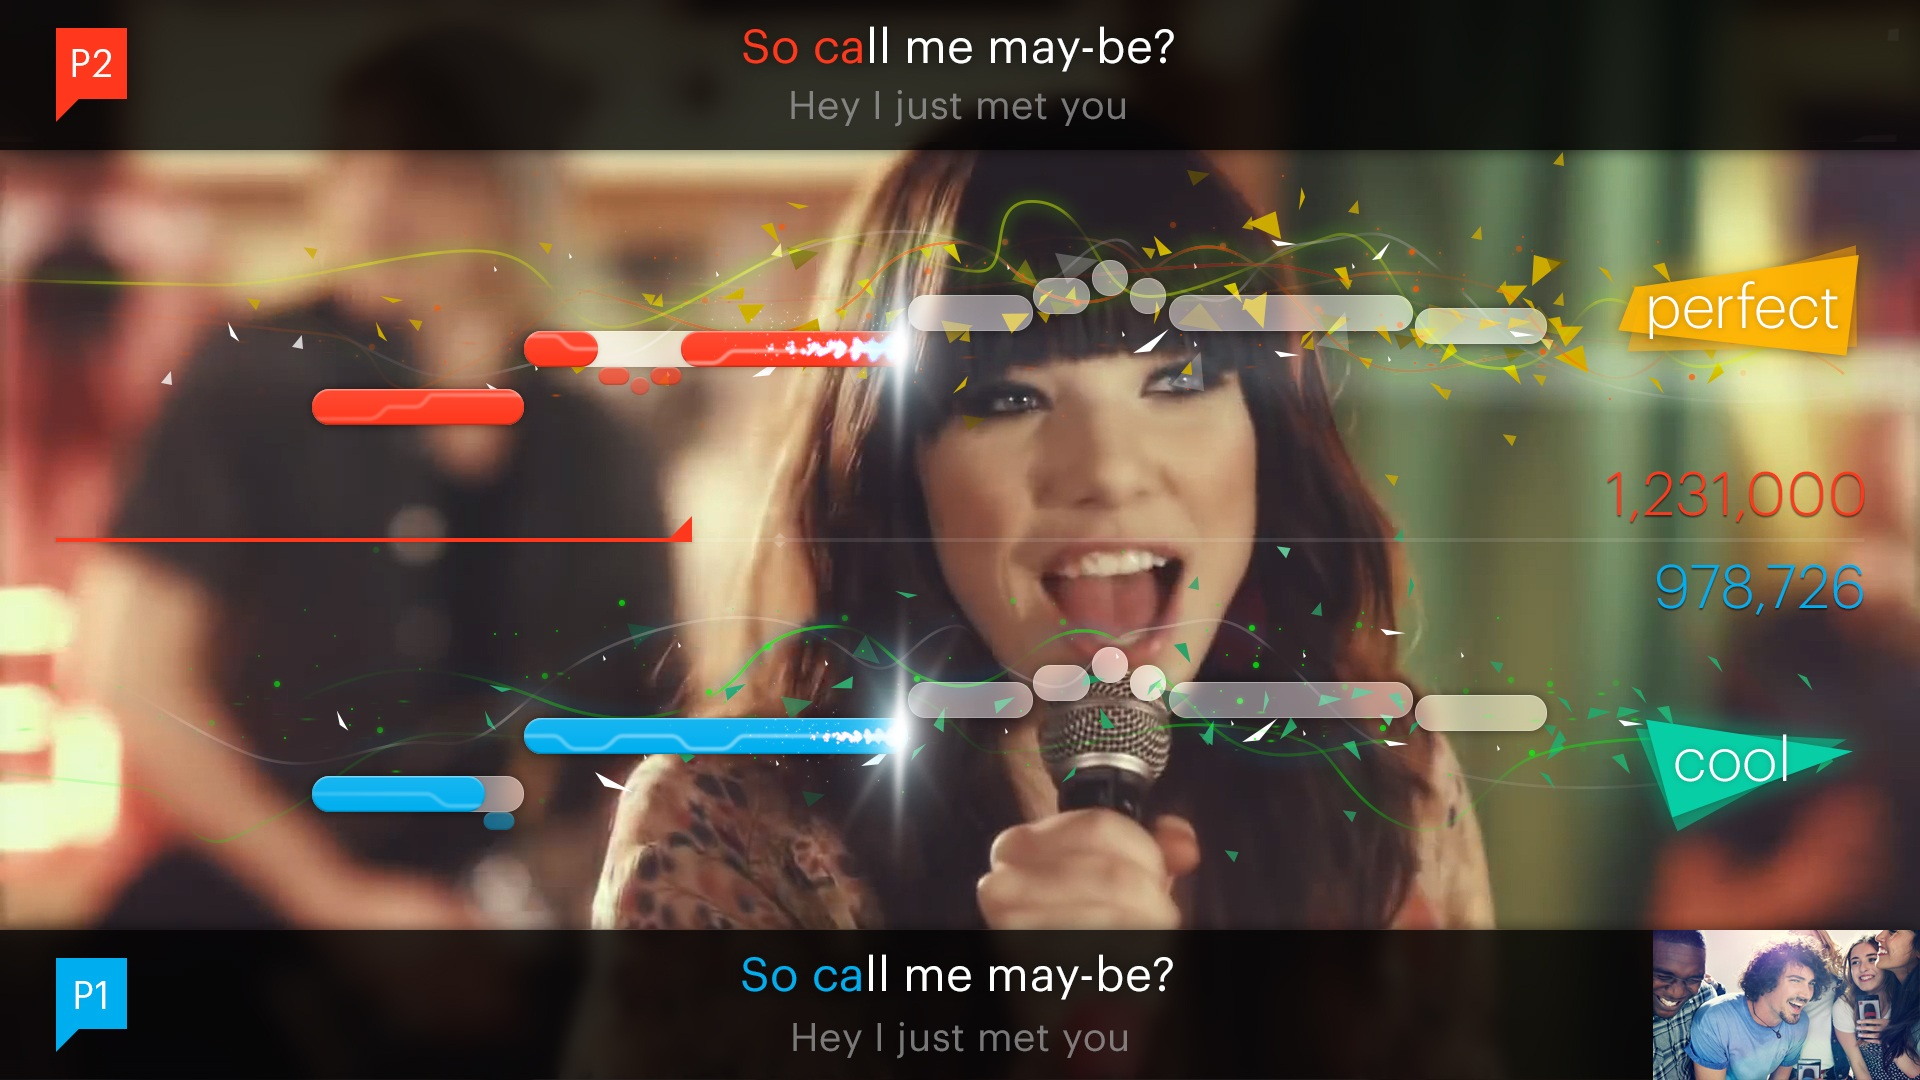 Notre test de SingStar Ultimate Party sur PlayStation 3